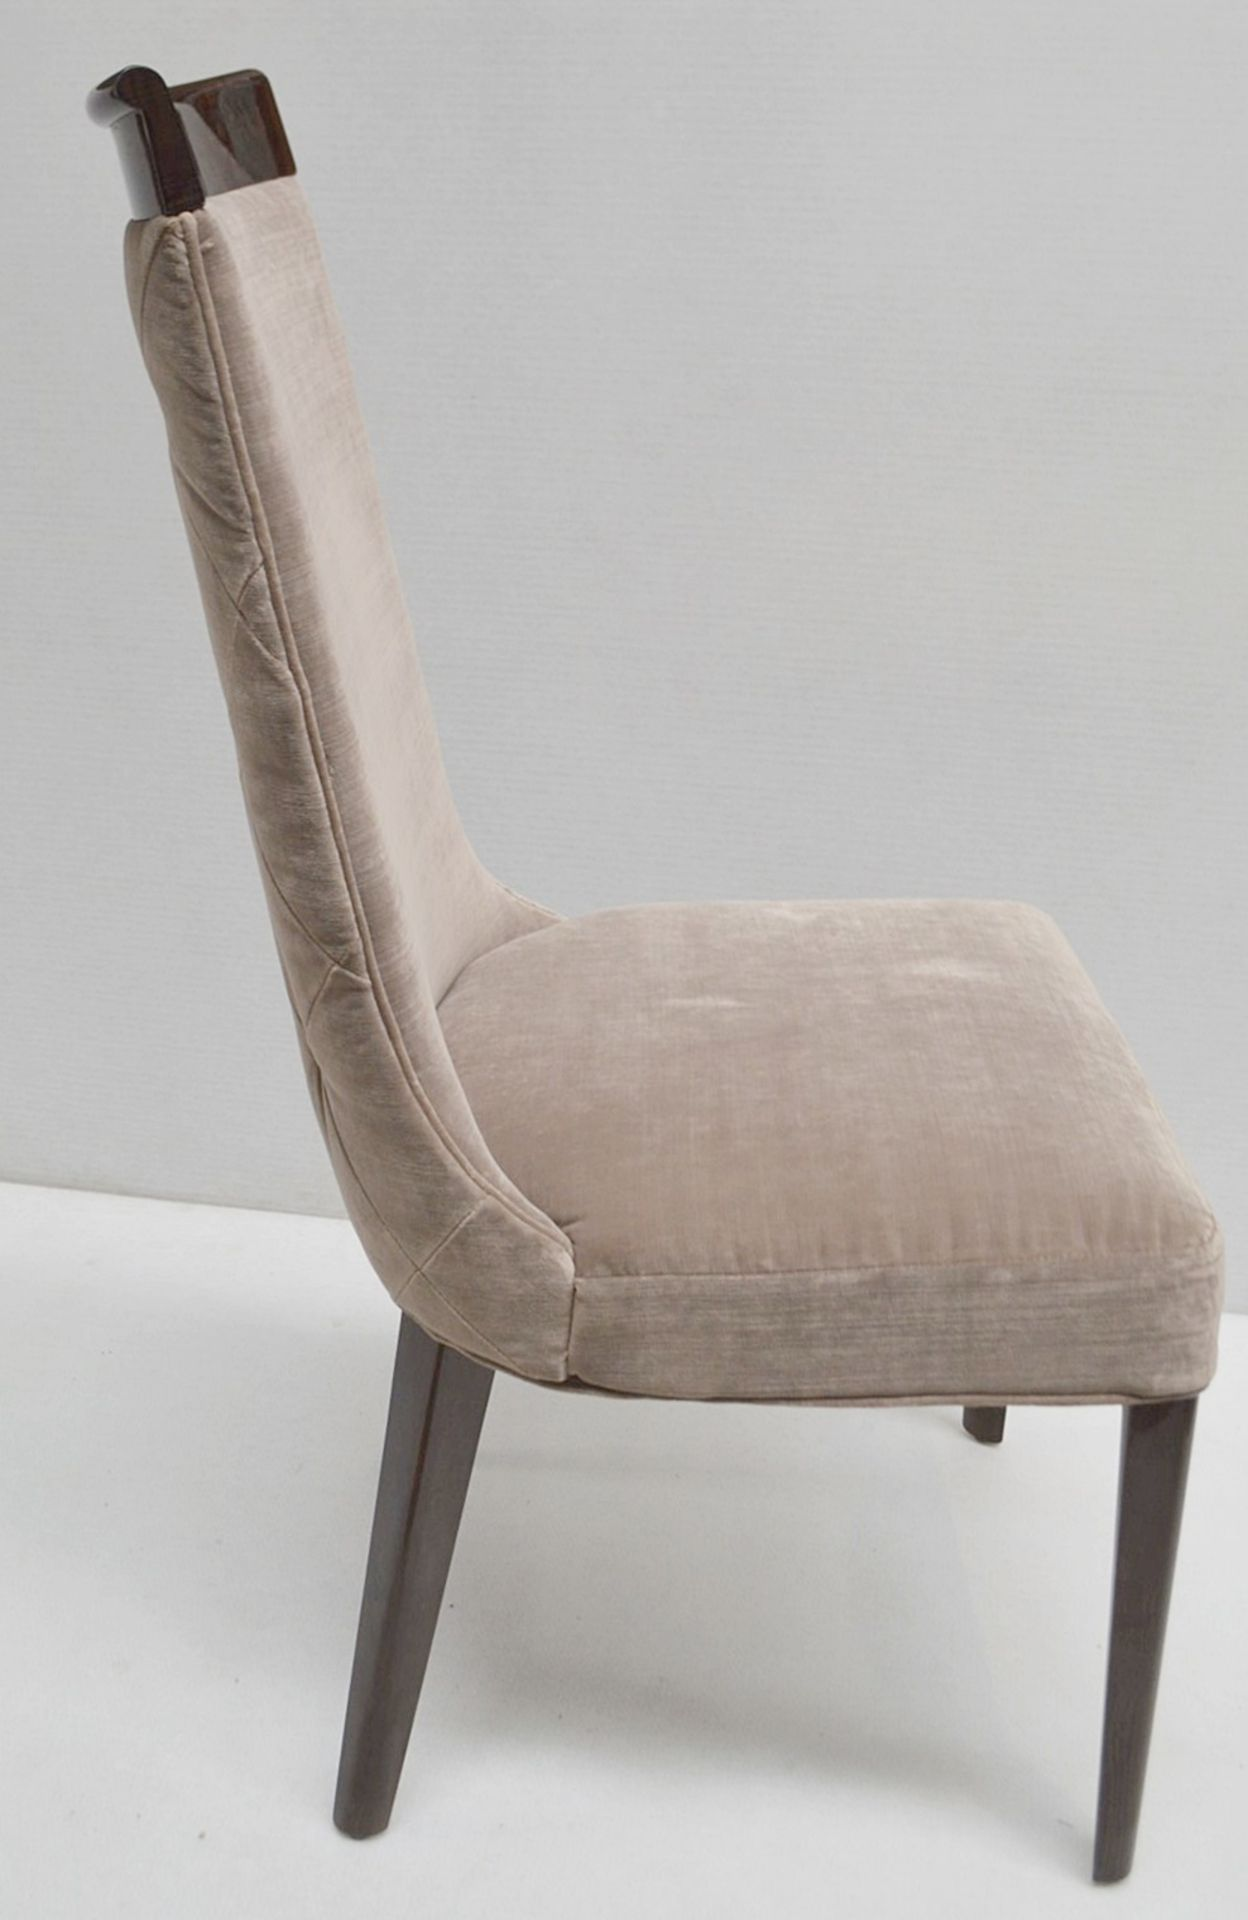 4 x GIORGIO Coliseum Velvet Upholstered Button Back Side Chairs With A Brazilian Rosewood Finish - - Image 11 of 11